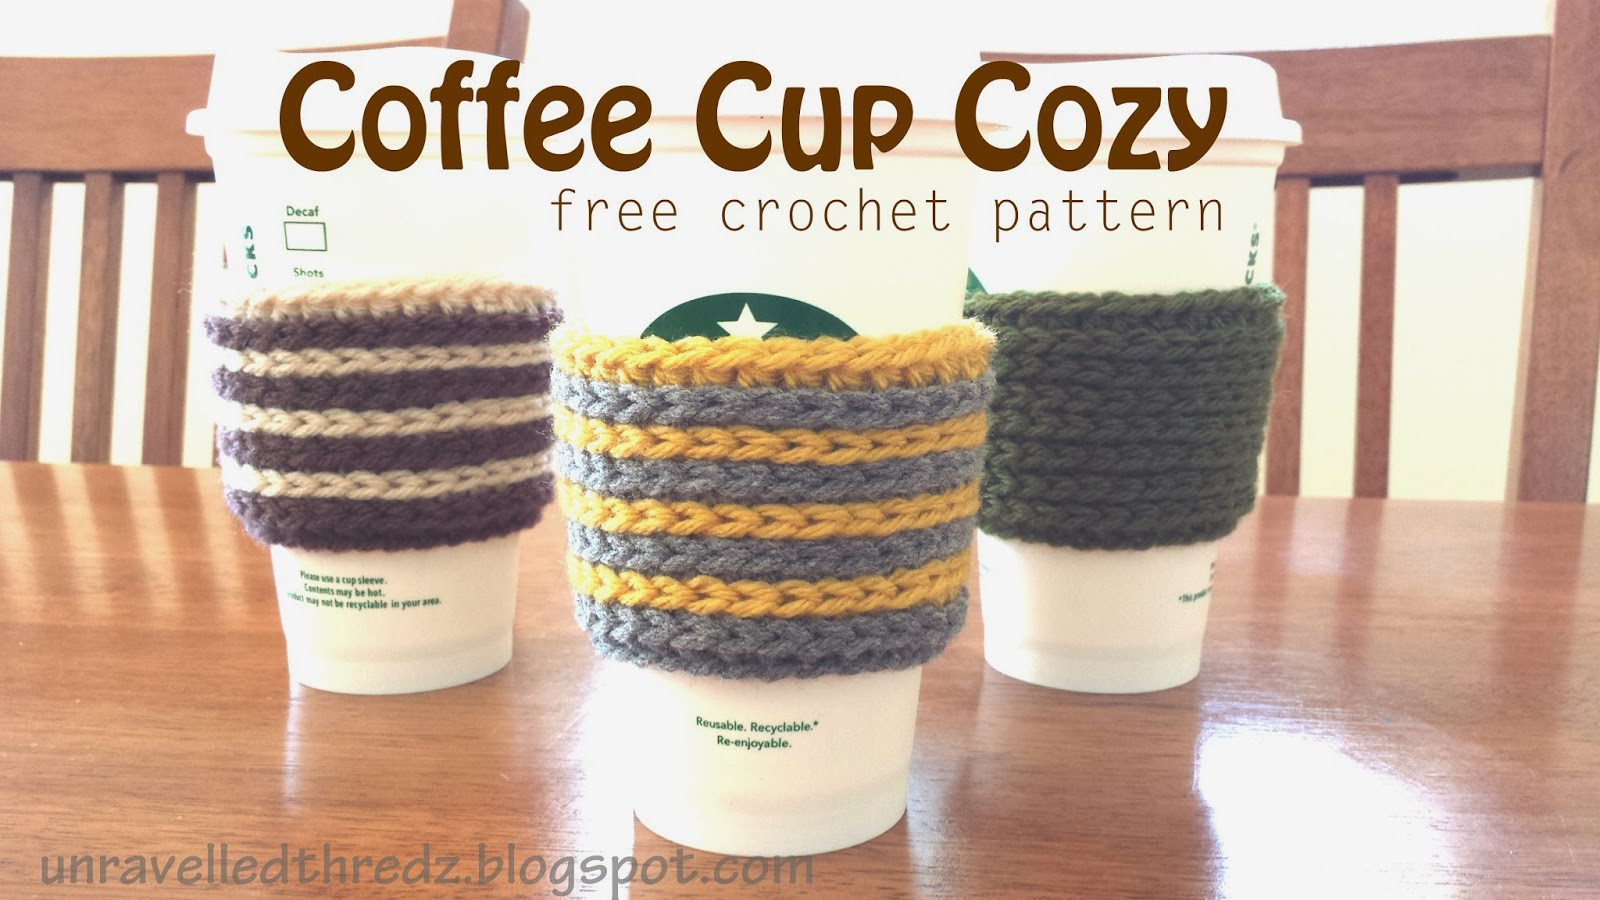 Crochet Coffee Cup Cozy Inspirational Crochet Class Beginning Crochet Sparkleez Crystles Of Crochet Coffee Cup Cozy Luxury Pdf Crochet Pattern Coffee Mug Cozy with button by